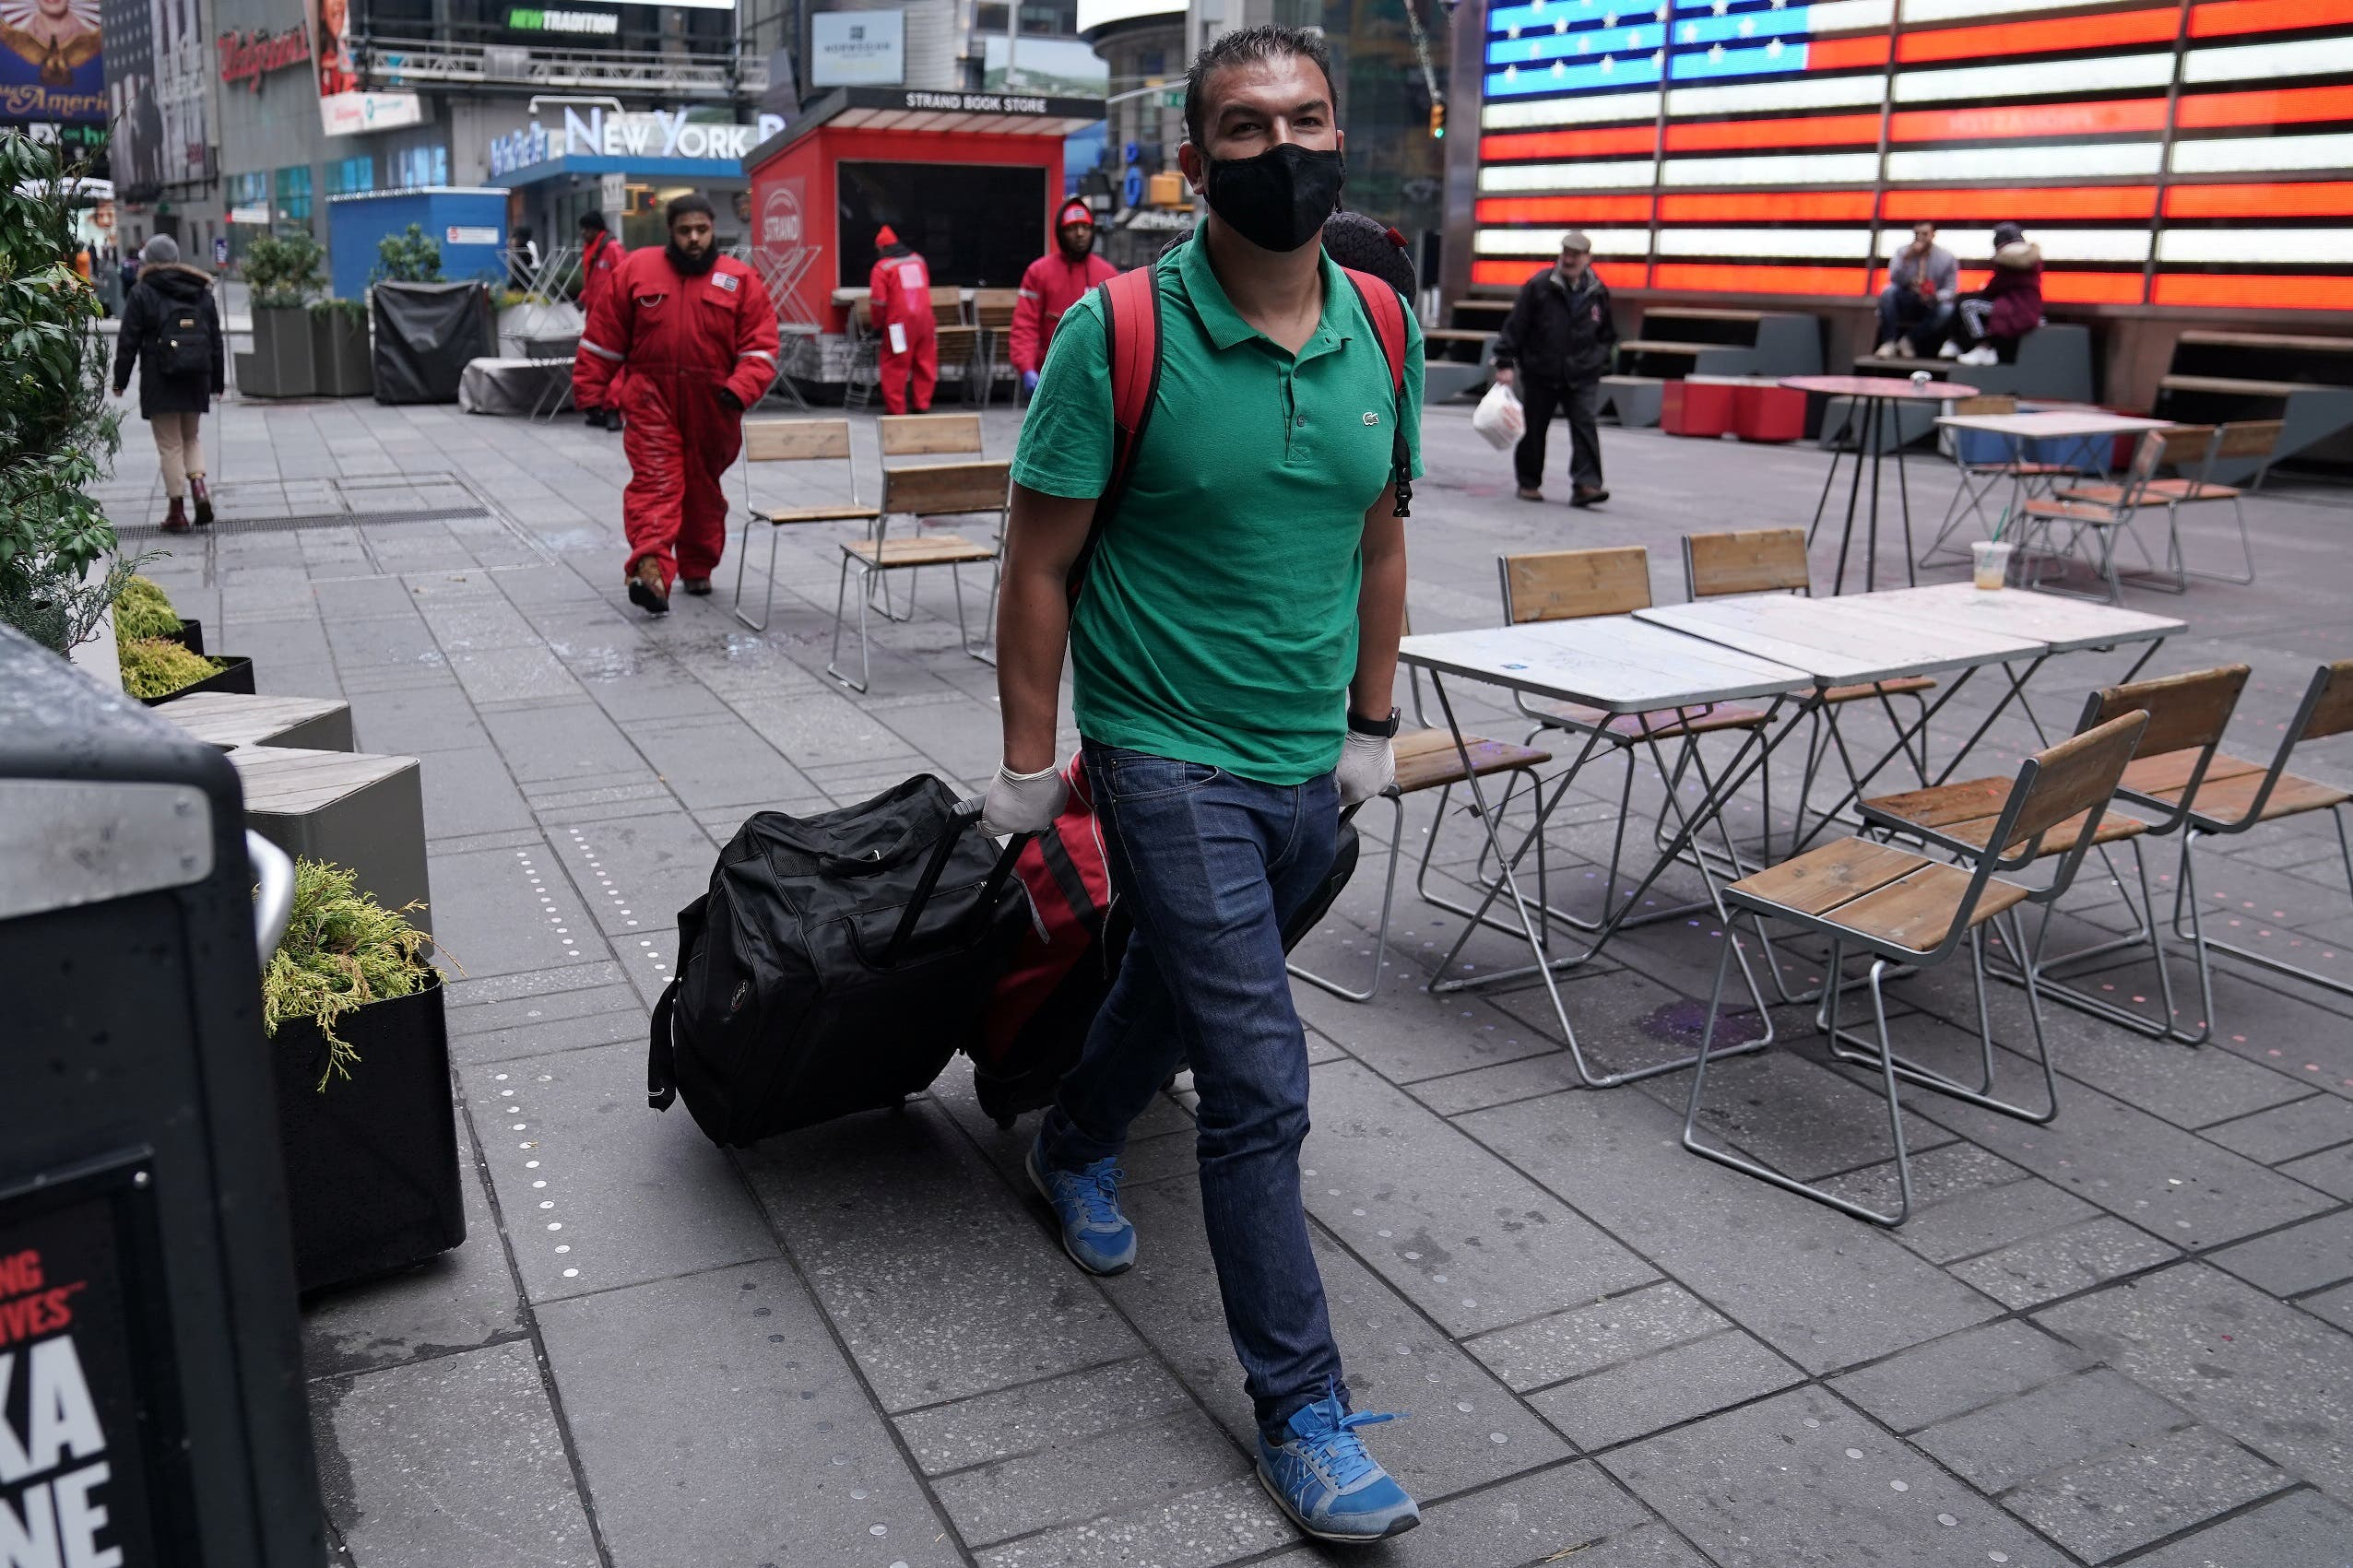 A man wearing a protective face mask walks with his luggage in Times Square, following the outbreak of Coronavirus disease (COVID-19), in the Manhattan borough of New York City, New York, US, March 19, 2020. (Reuters)